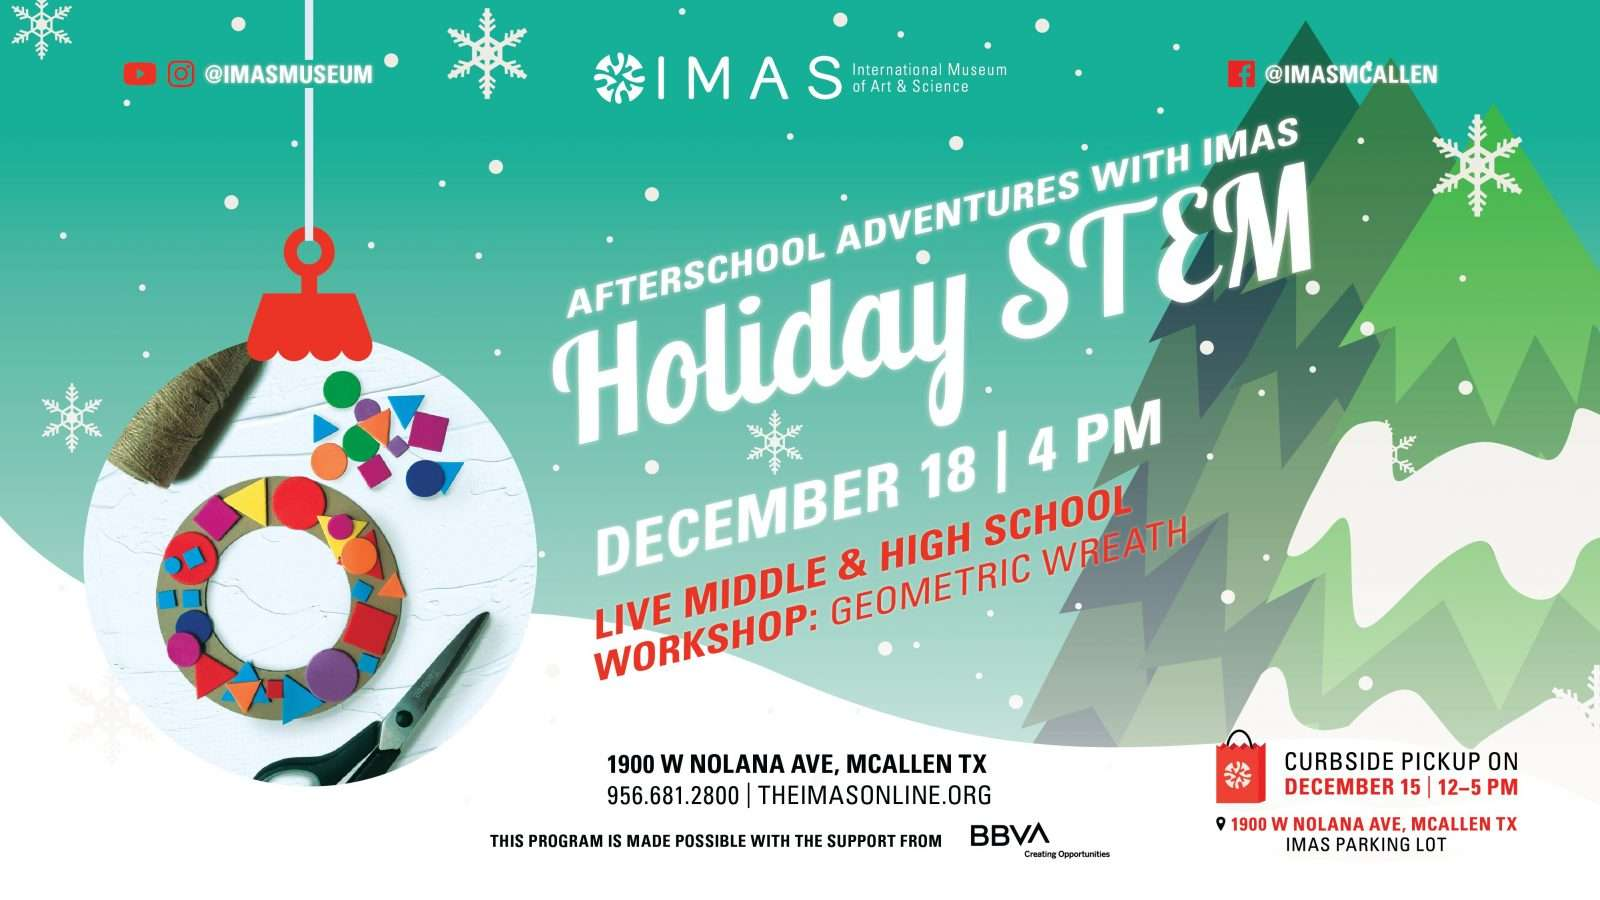 Holiday STEM workshop 6-12th grade